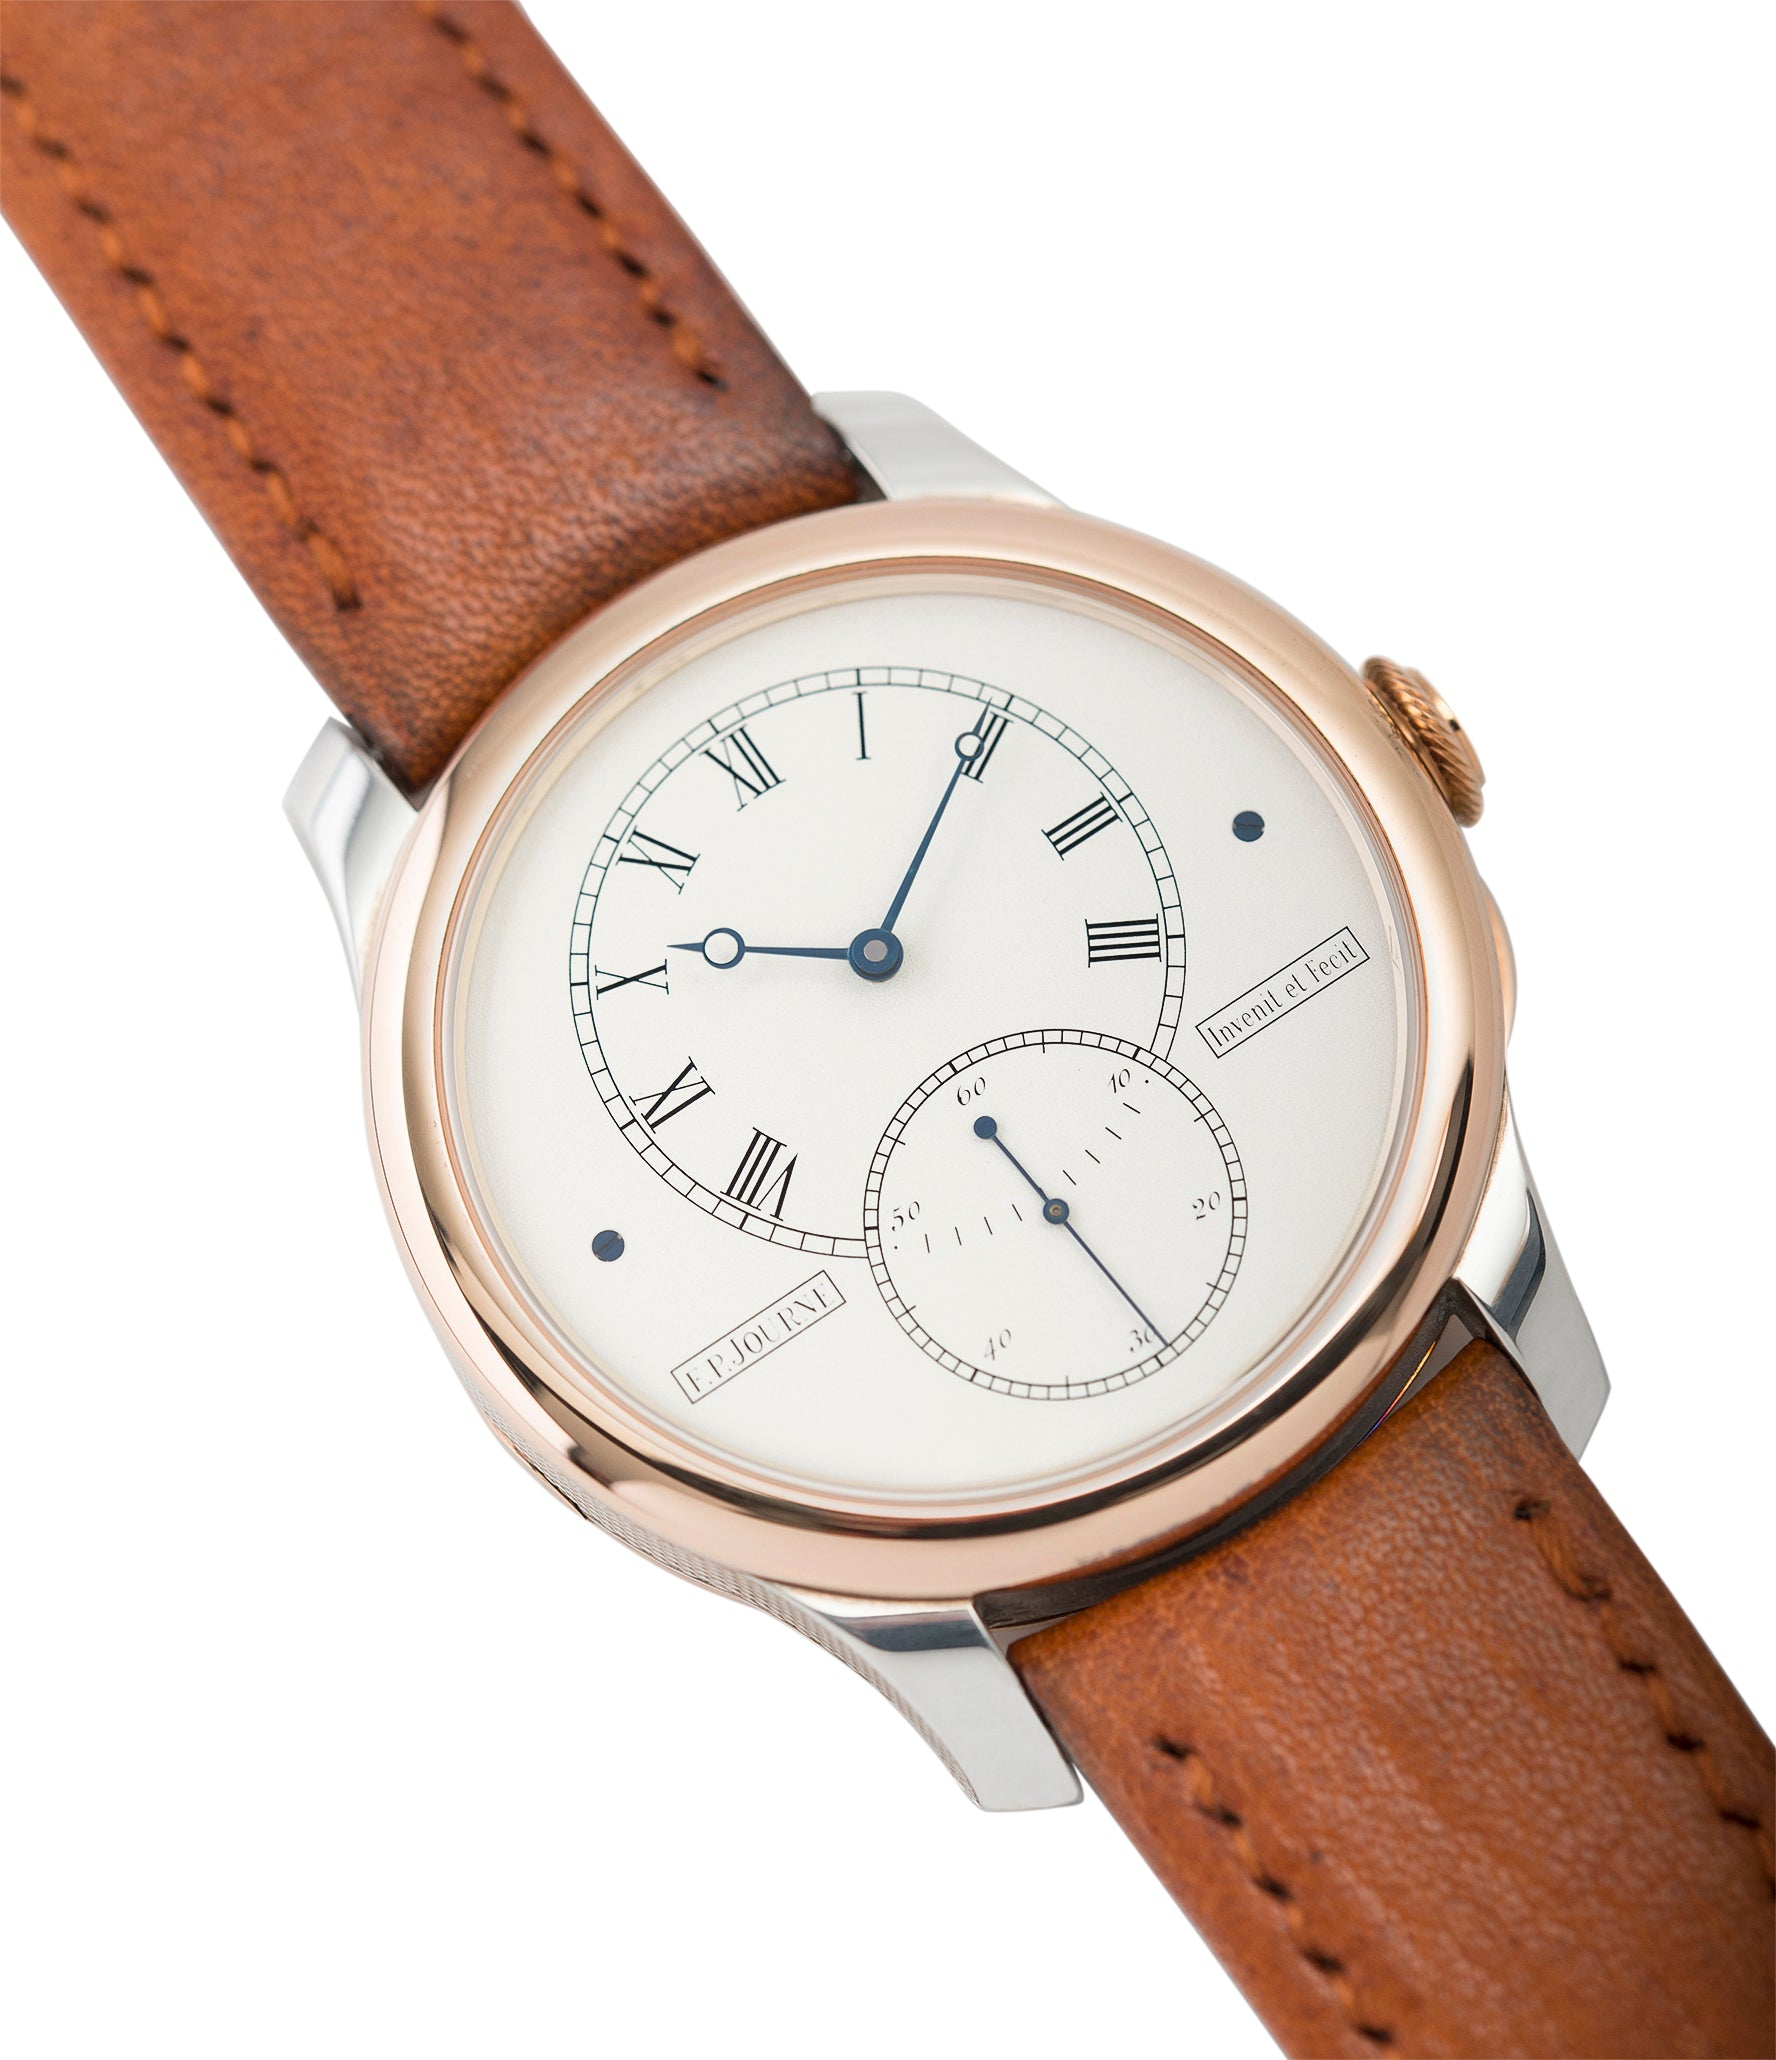 silver and rose gold T30 F. P. Journe Tourbillon Historique Limited Edition of 99 rare duel barrel tourbillon dress watch in rose gold and silver for sale online at A Collected Man London approved seller of independent watchmakers